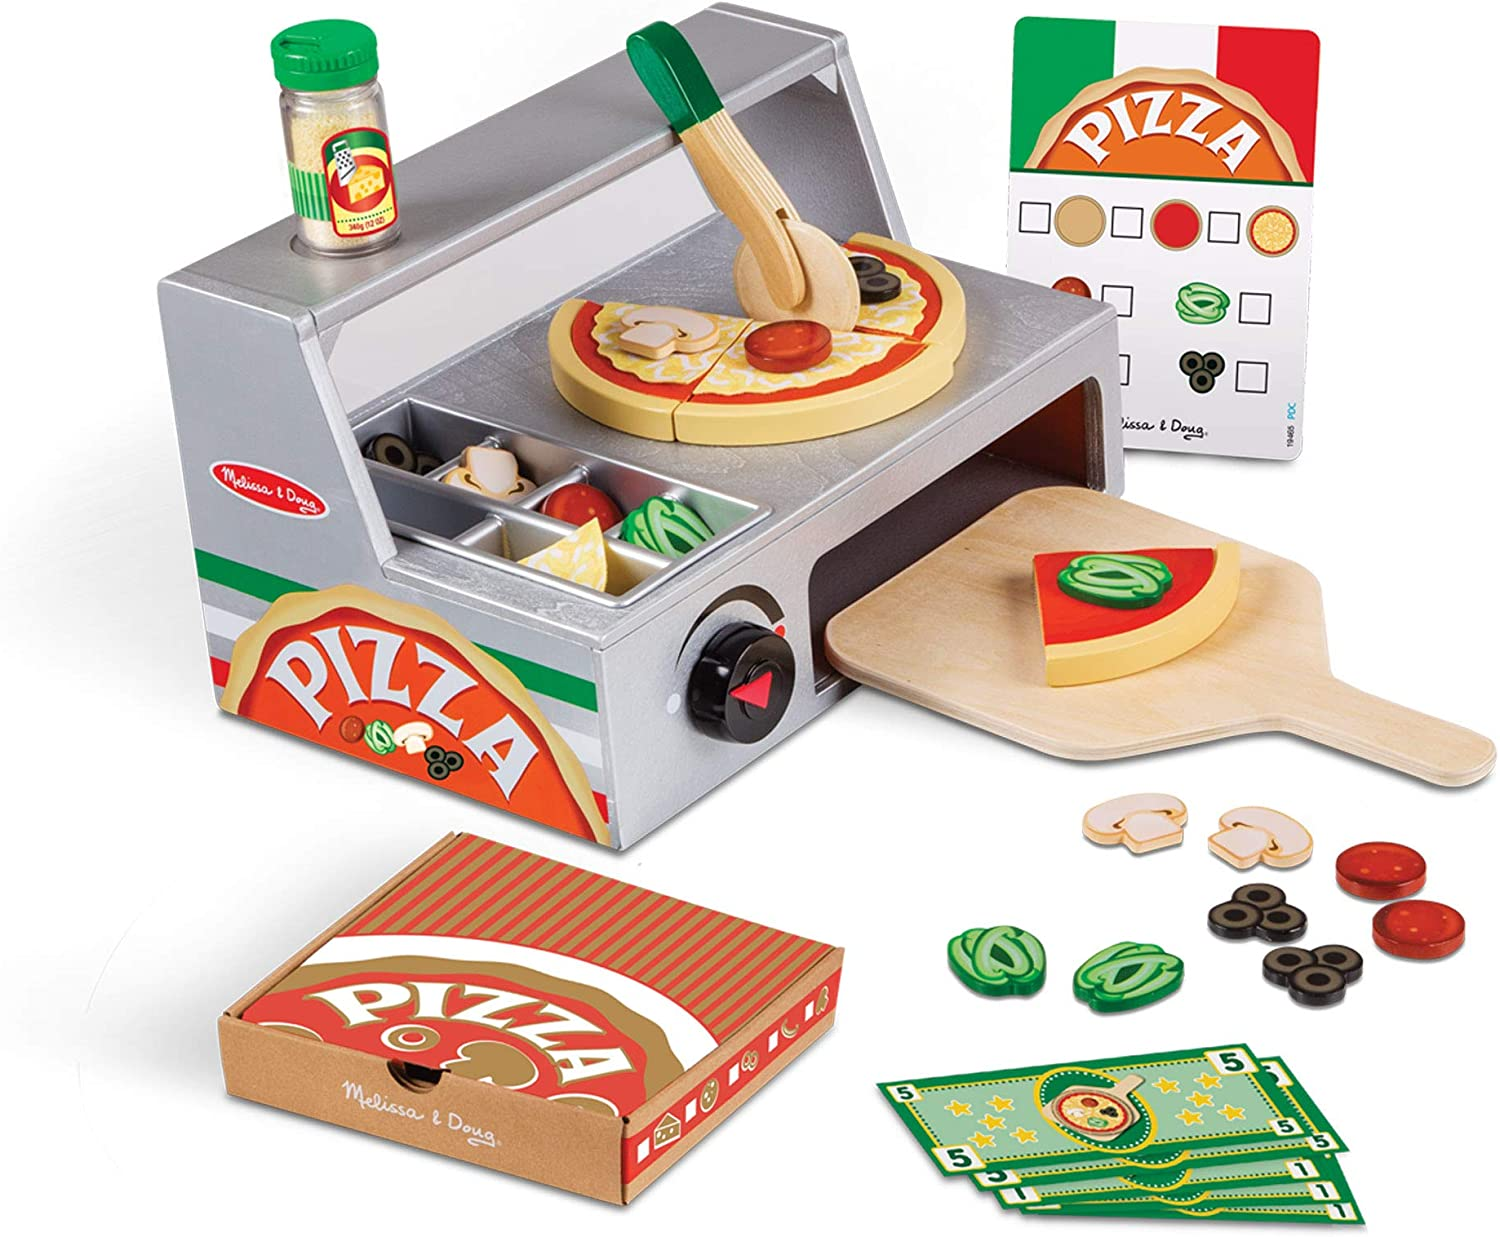 Melissa & Doug Top and Bake Wooden Pizza Counter Play Food Set (Pretend Play, Helps Support Cognitive Development, 34 Pieces, Great Gift for Girls and Boys - Best for 3, 4, 5 Year Olds and Up)